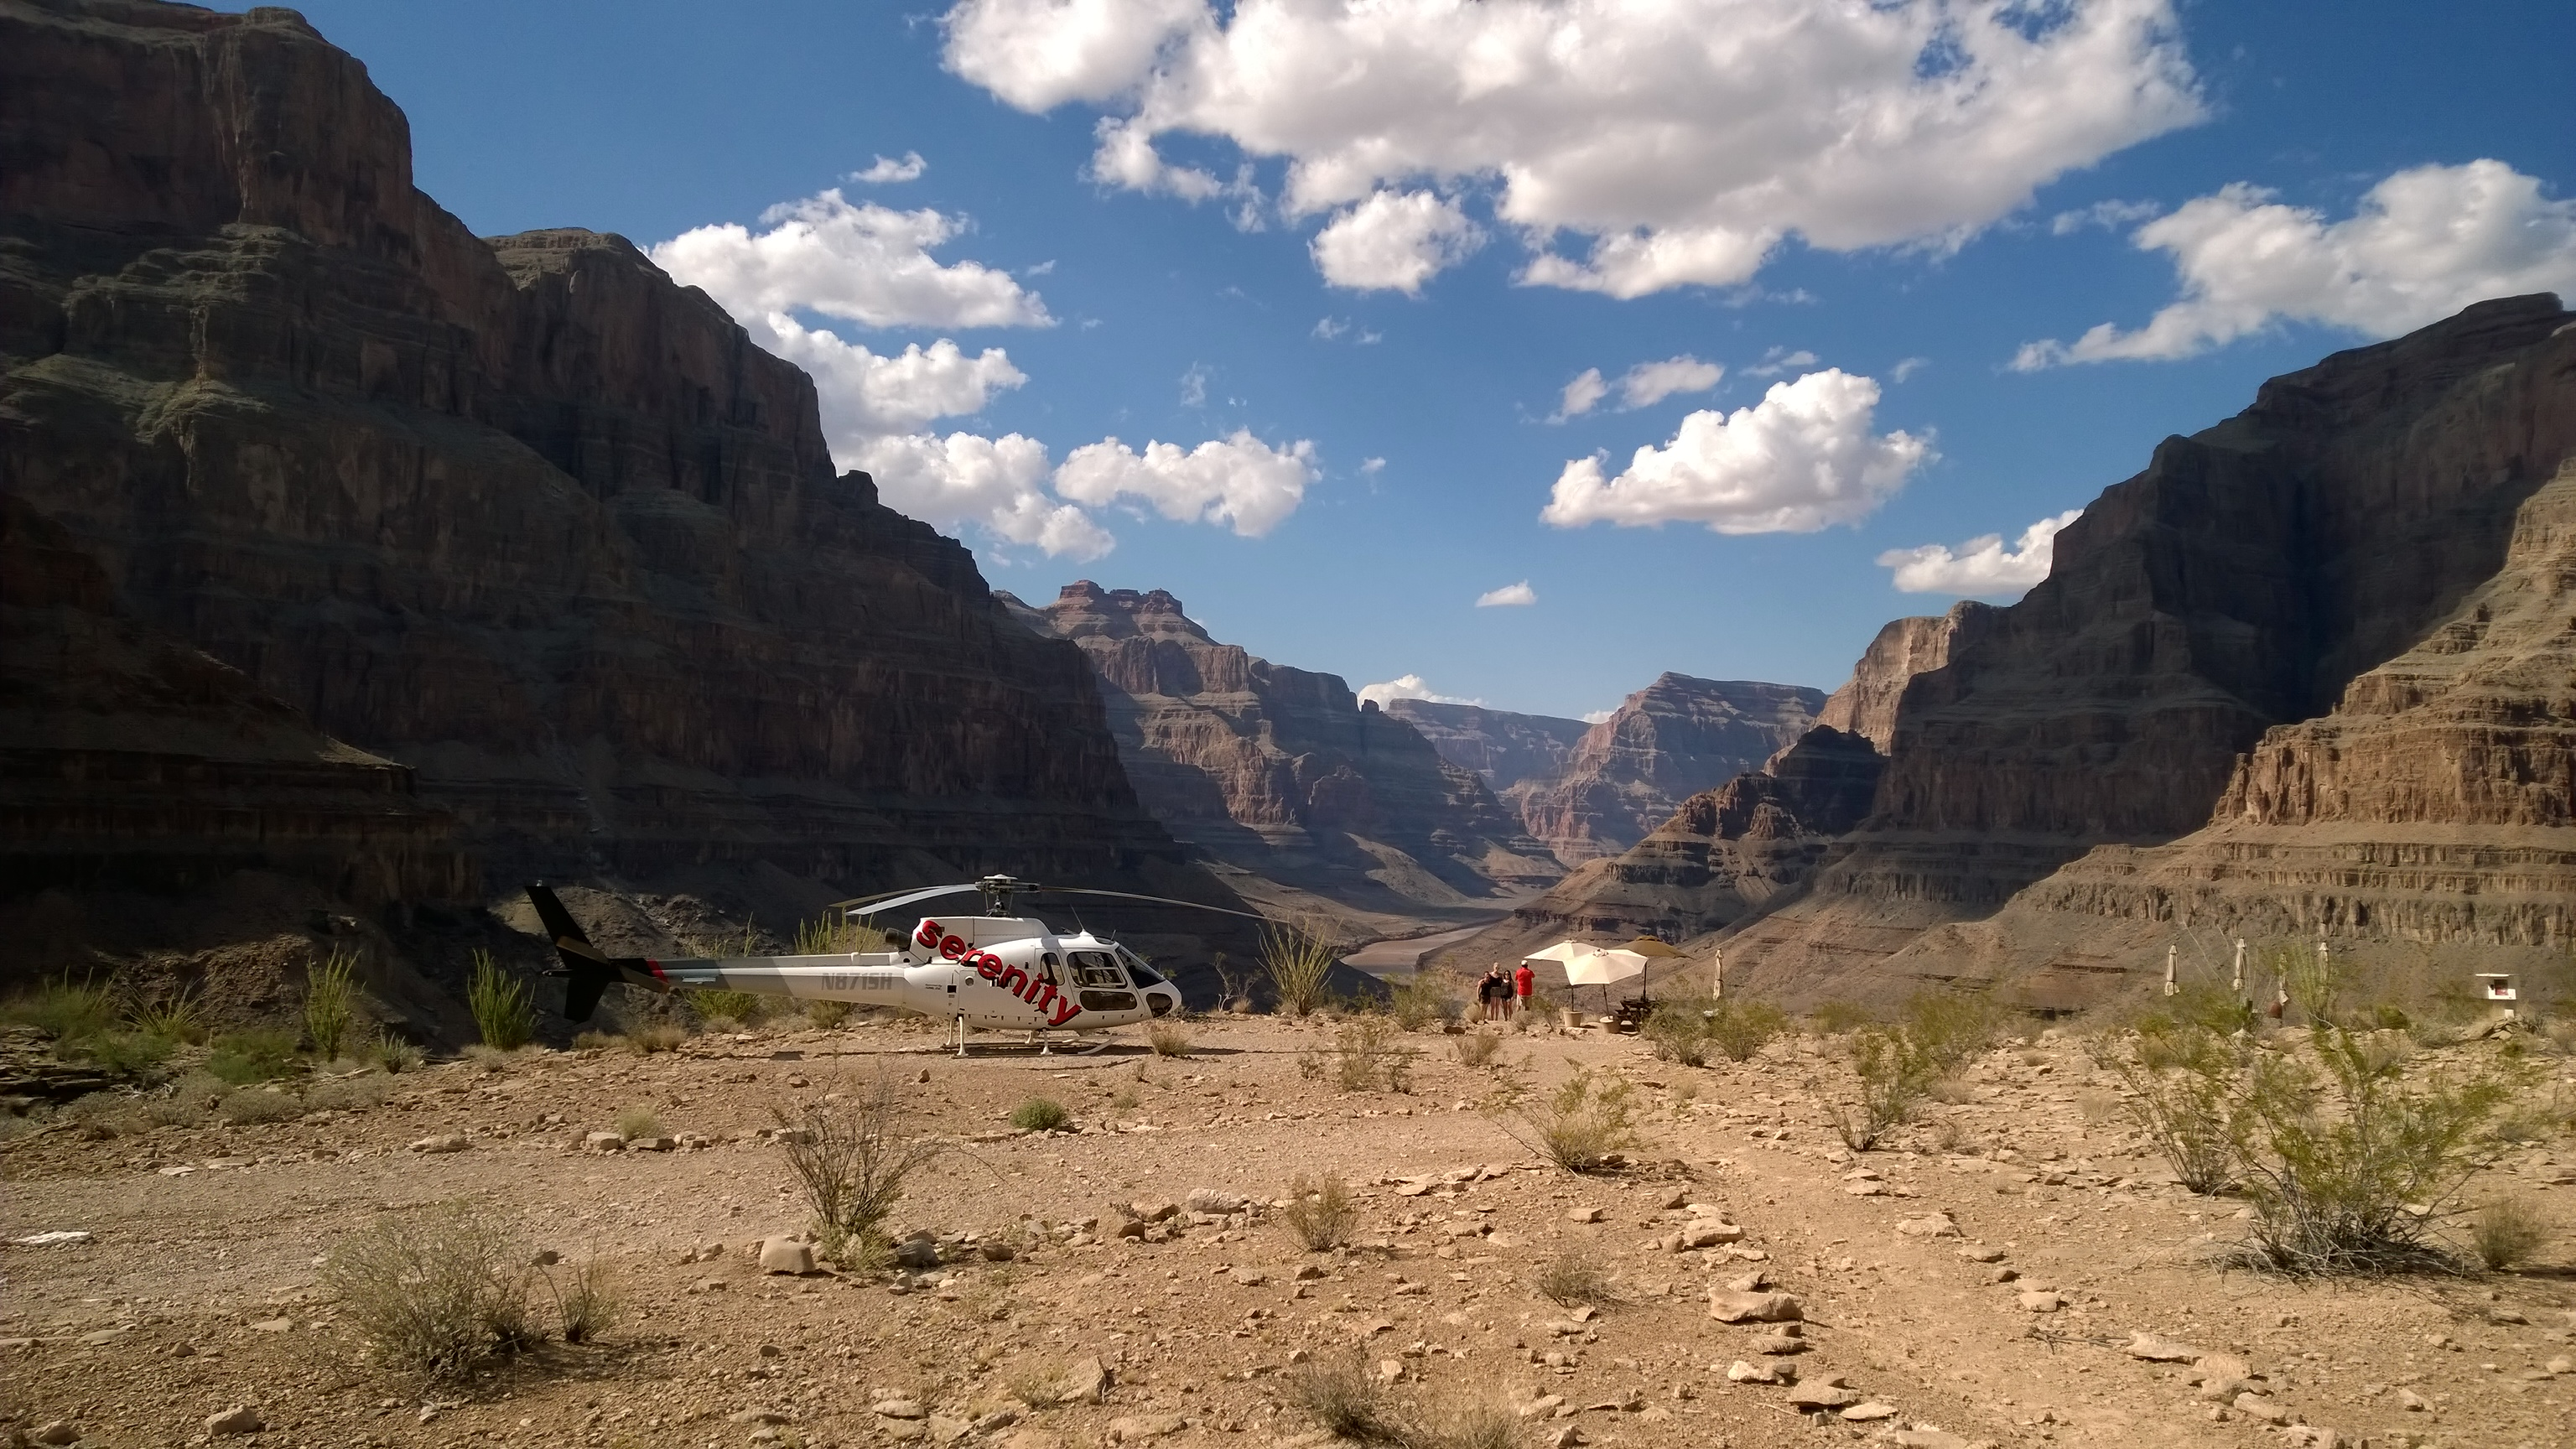 Private Tours Of The Grand Canyon From Las Vegas